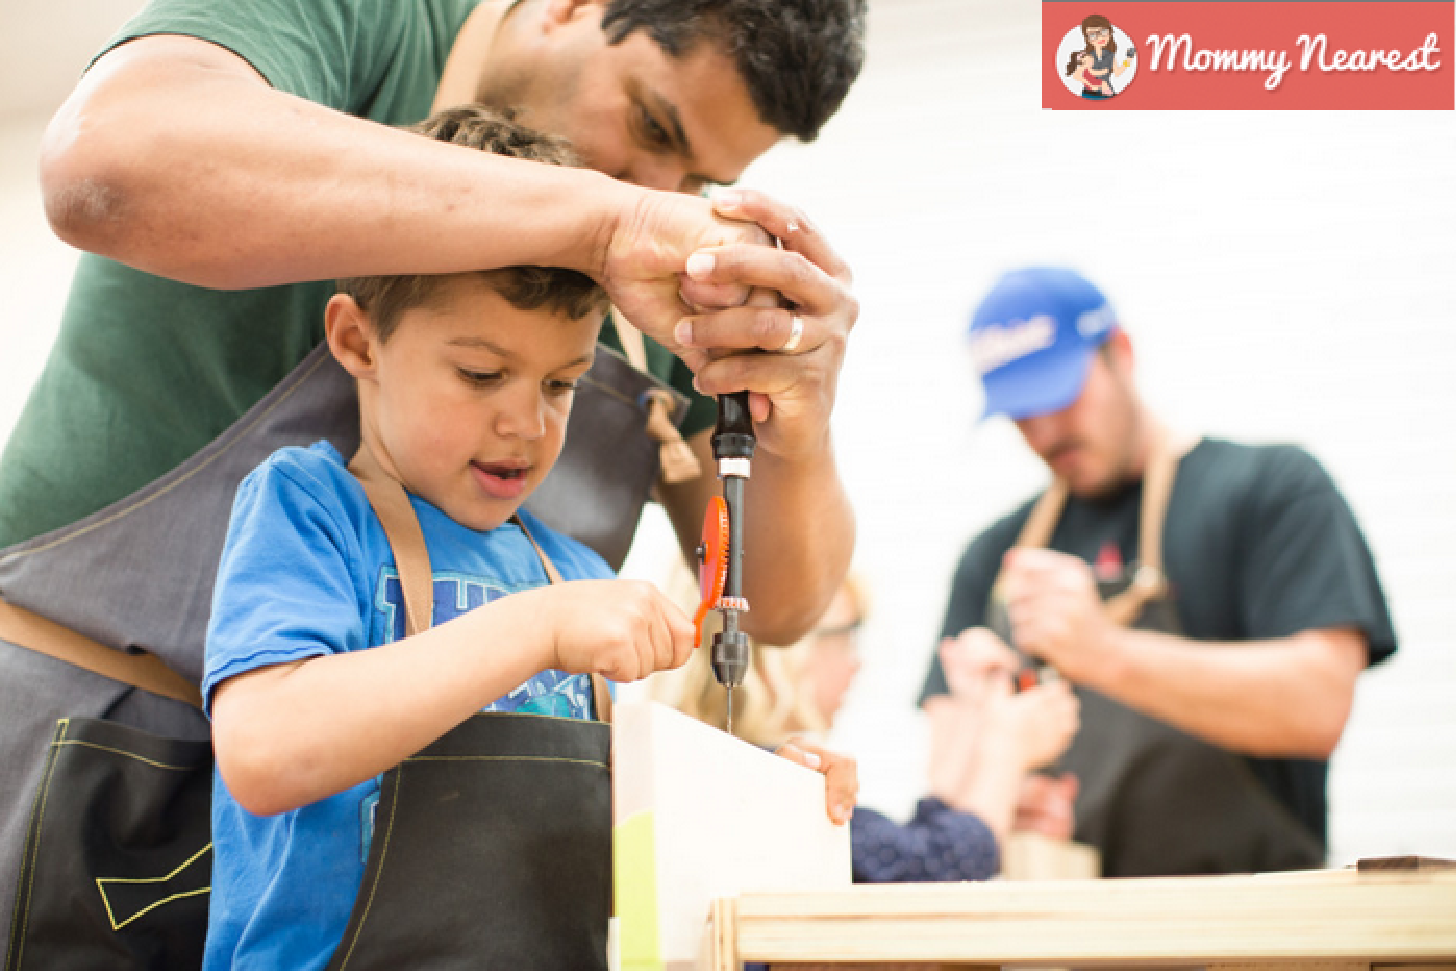 6 Great Tinkering Spaces in the Bay Area for Creative Kids  (Mommy Nearest, July 2015)